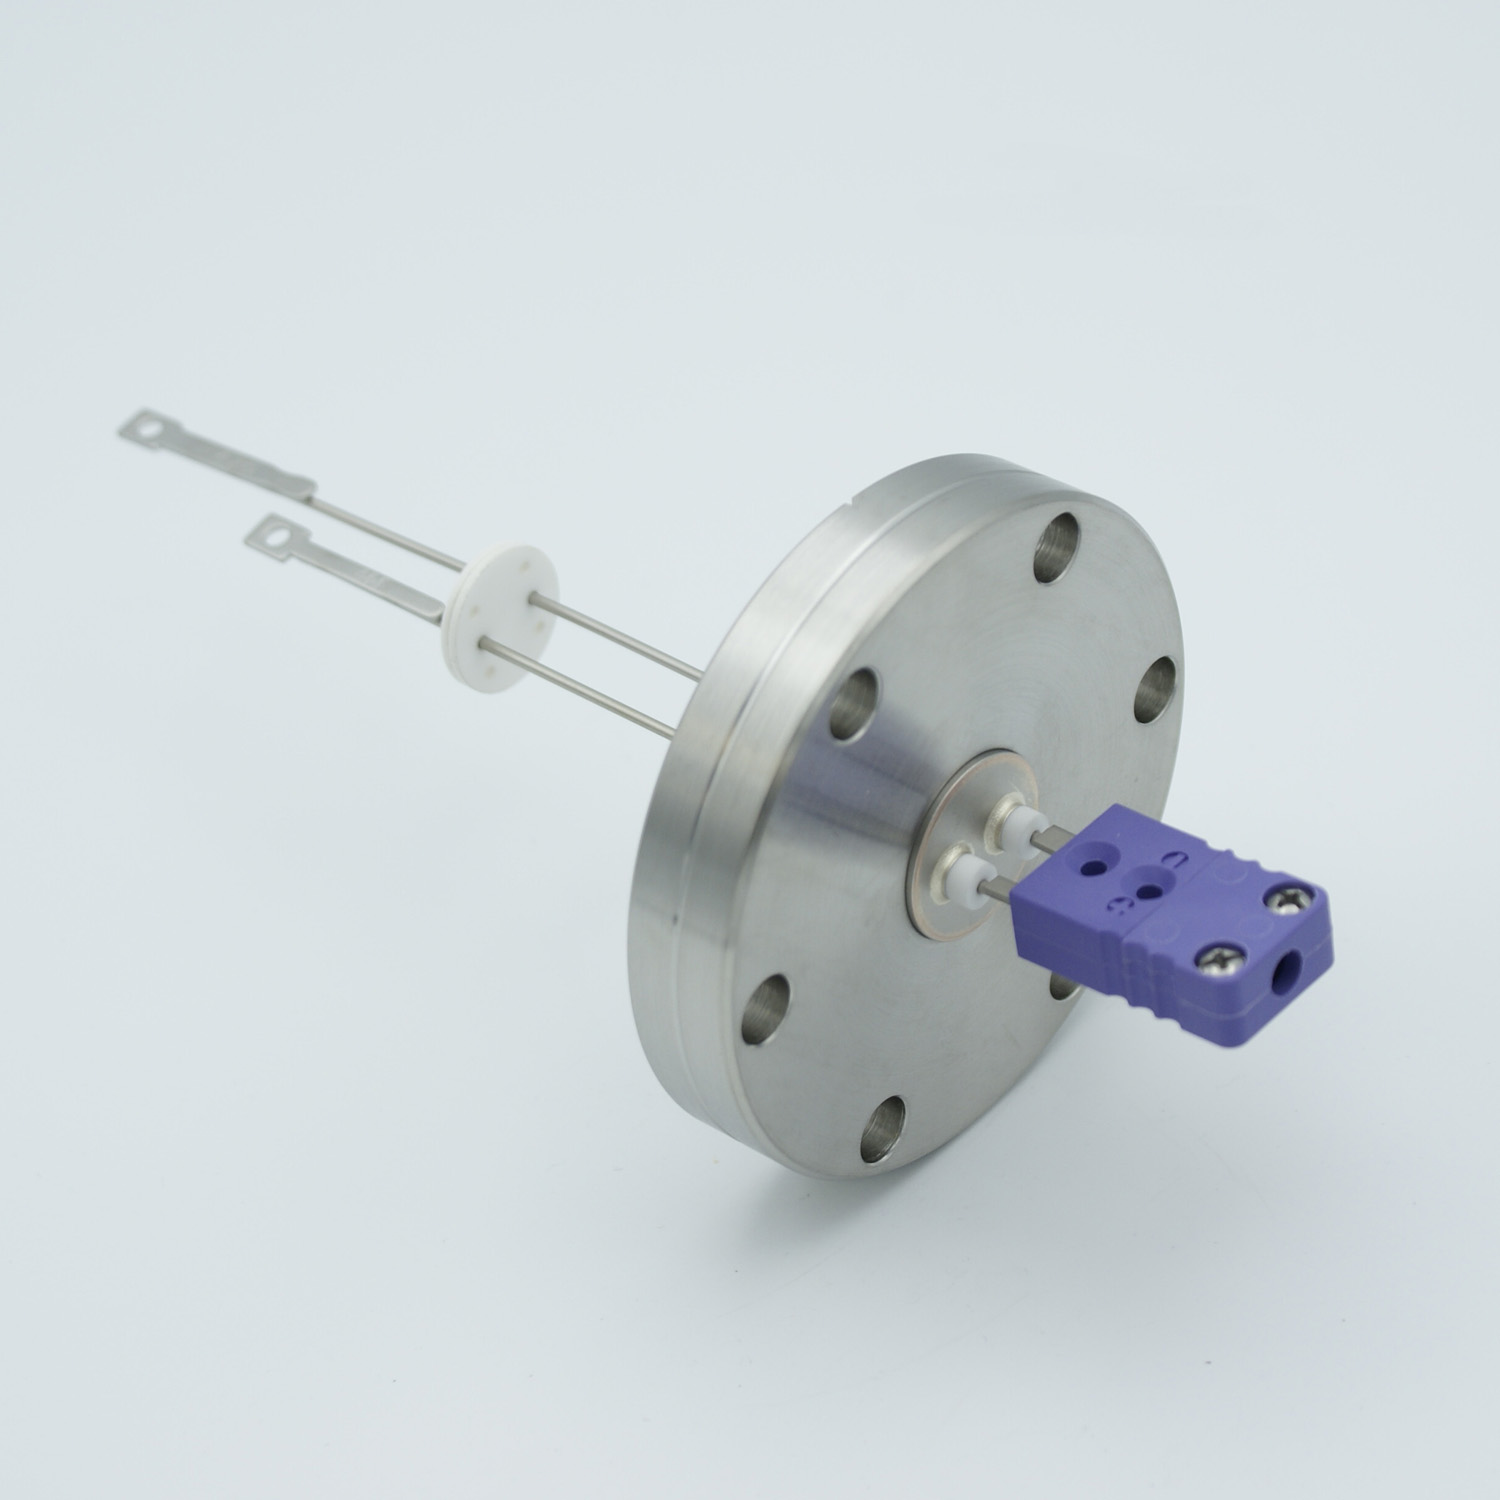 1 pair Thermocouple type-E feedthrough with both side connectors included, DN40CF flange